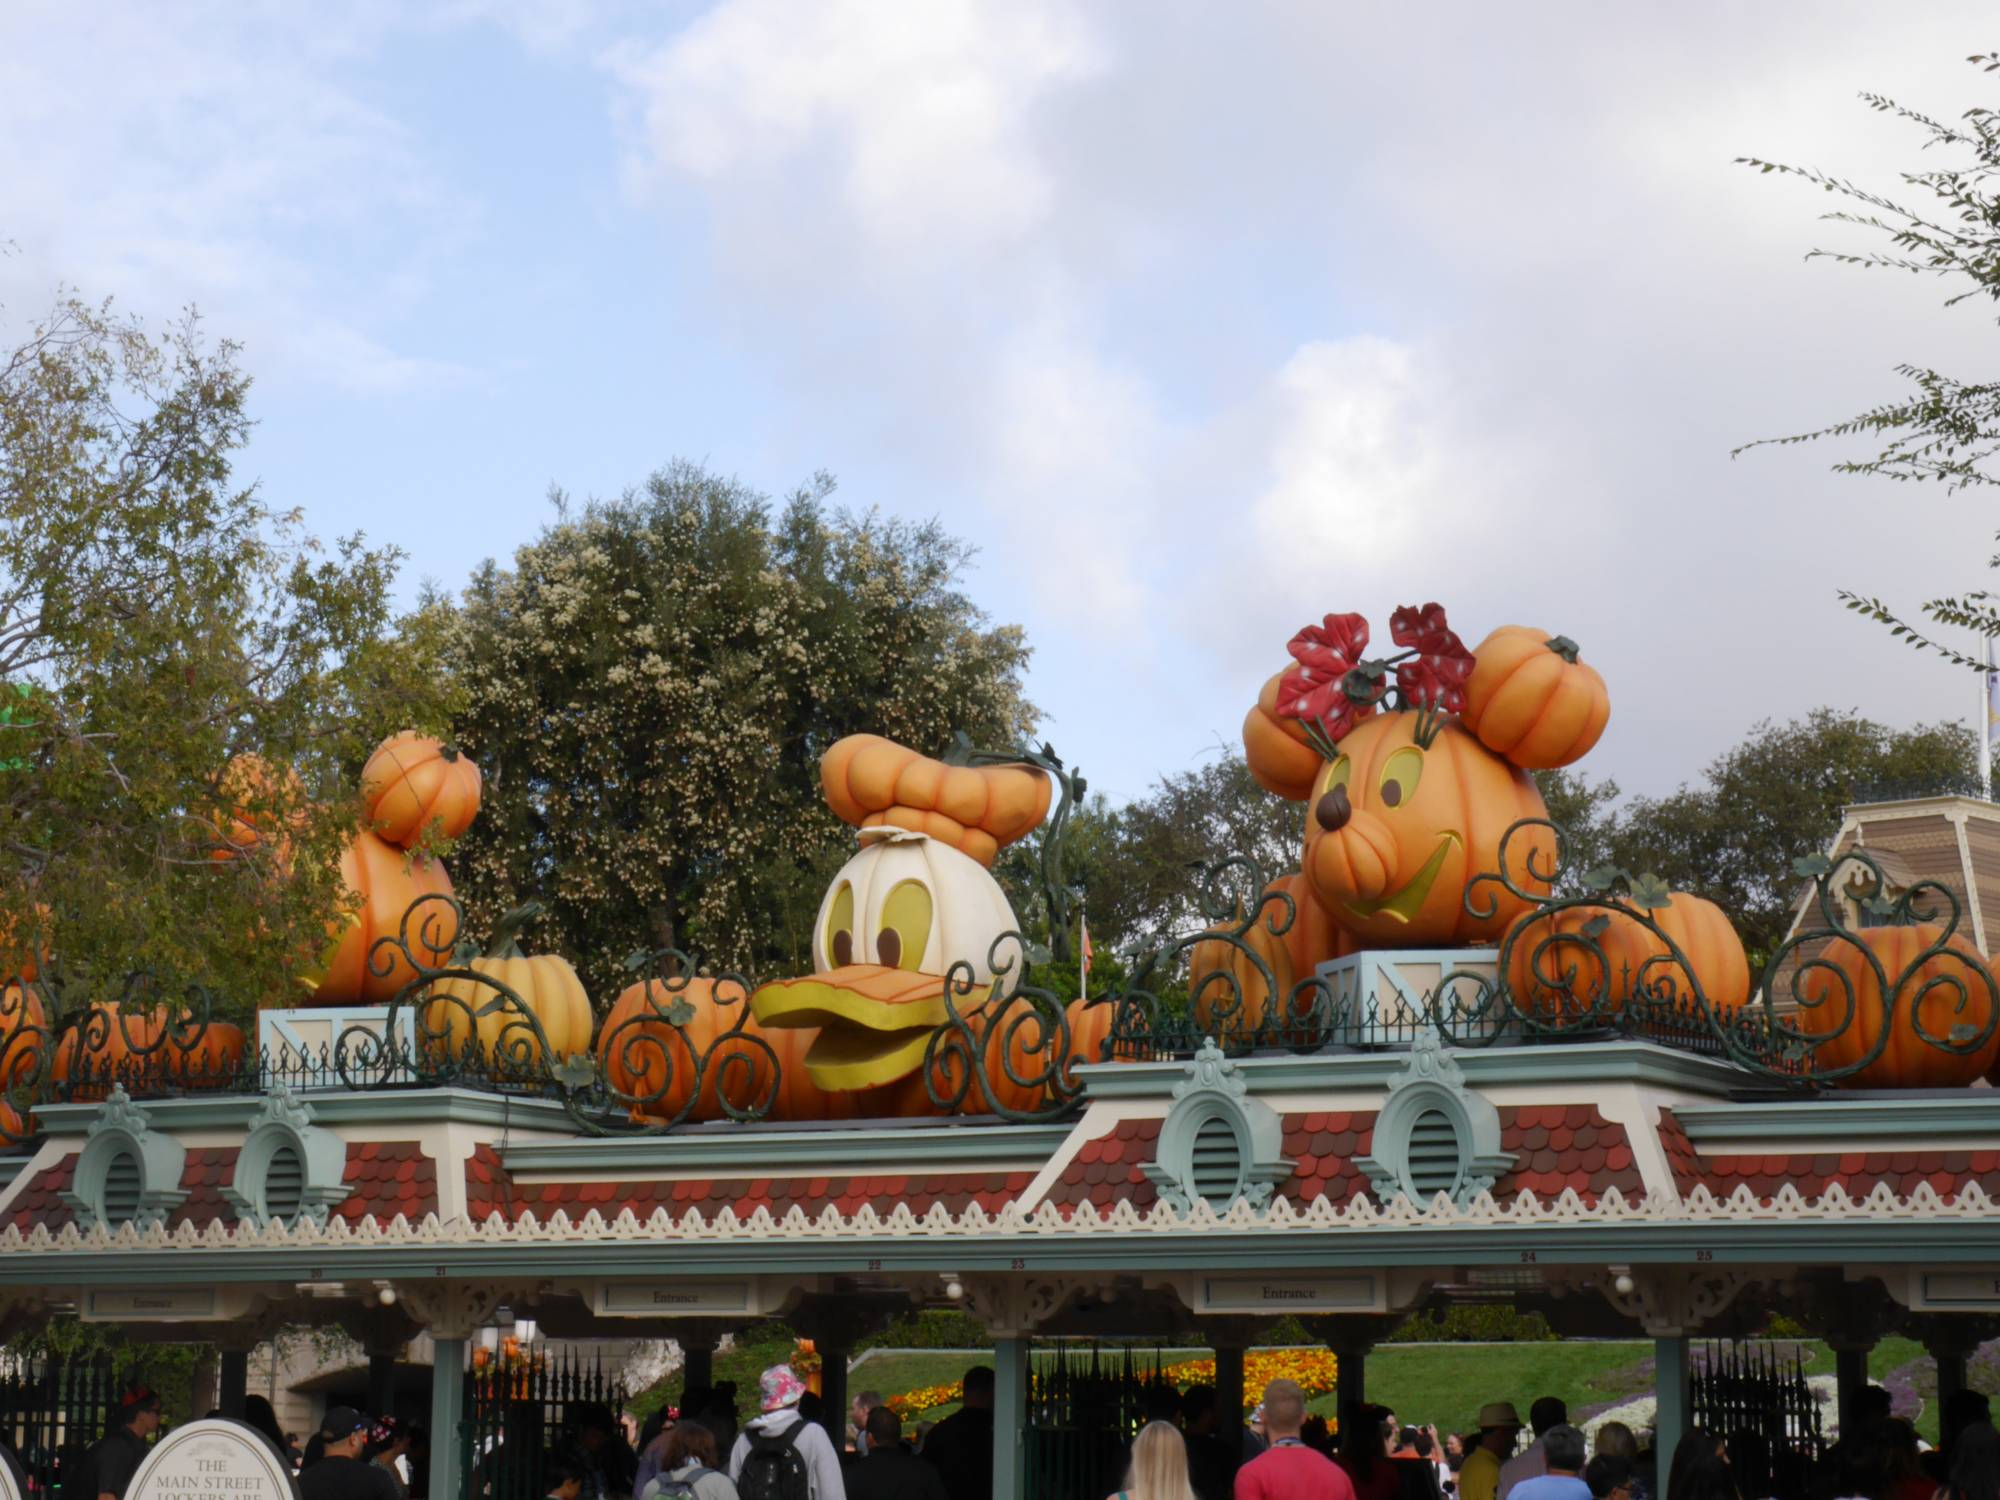 Enjoy Mickey's Halloween Party at Disneyland |PassPorter.com